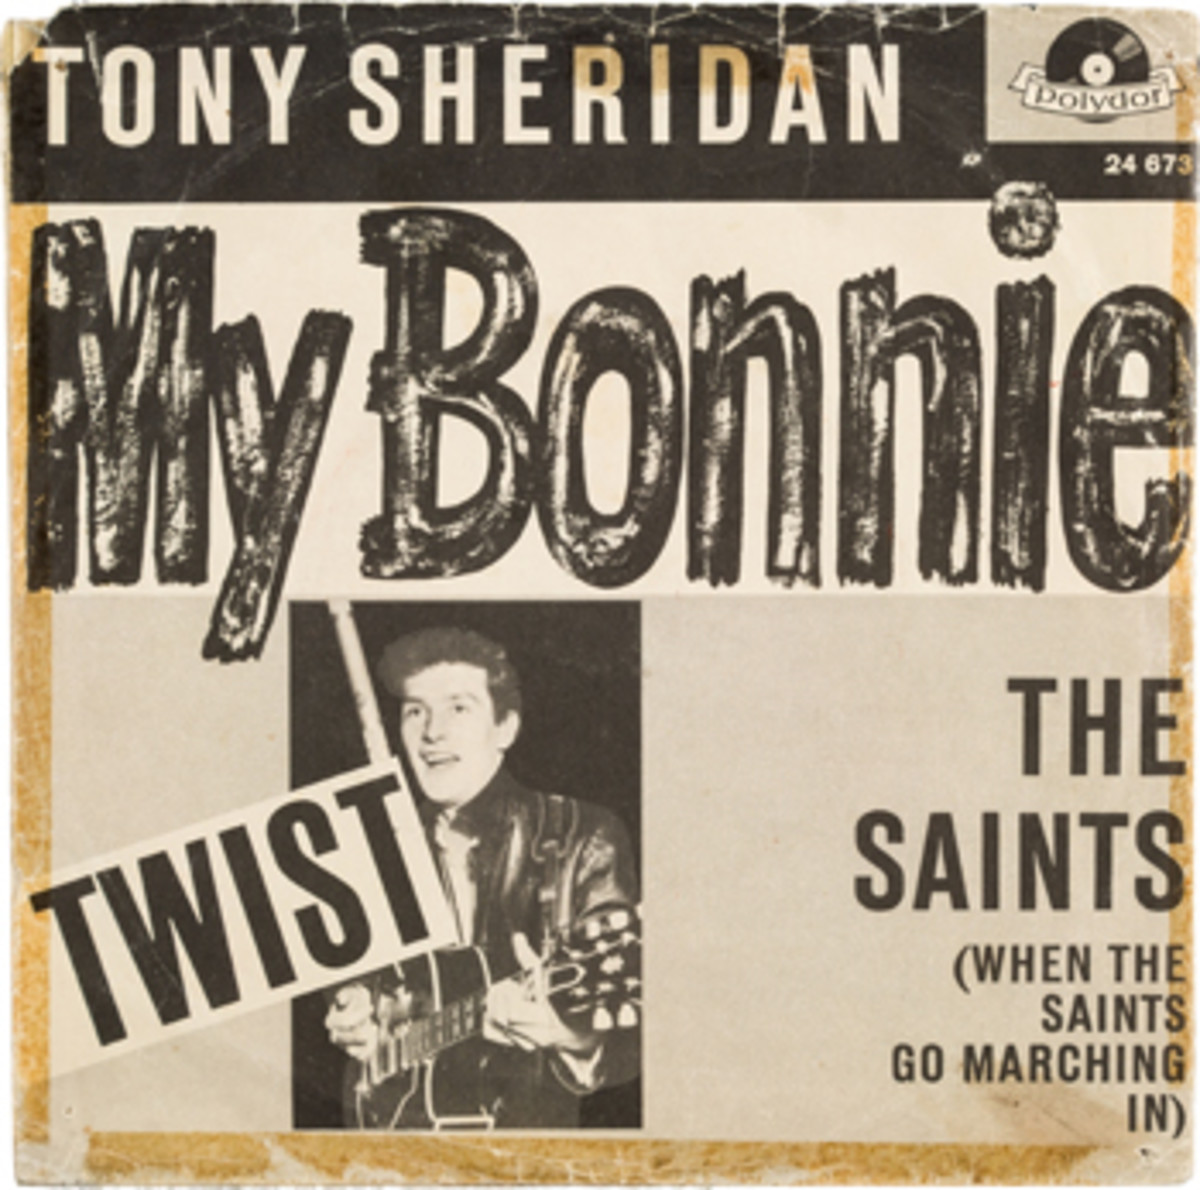 Beatles - Tony Sheridan & The Beat Brothers My Bonnie The Saints German 45 with Picture Sleeve 1 (Polydor NH 24 673, 1962).